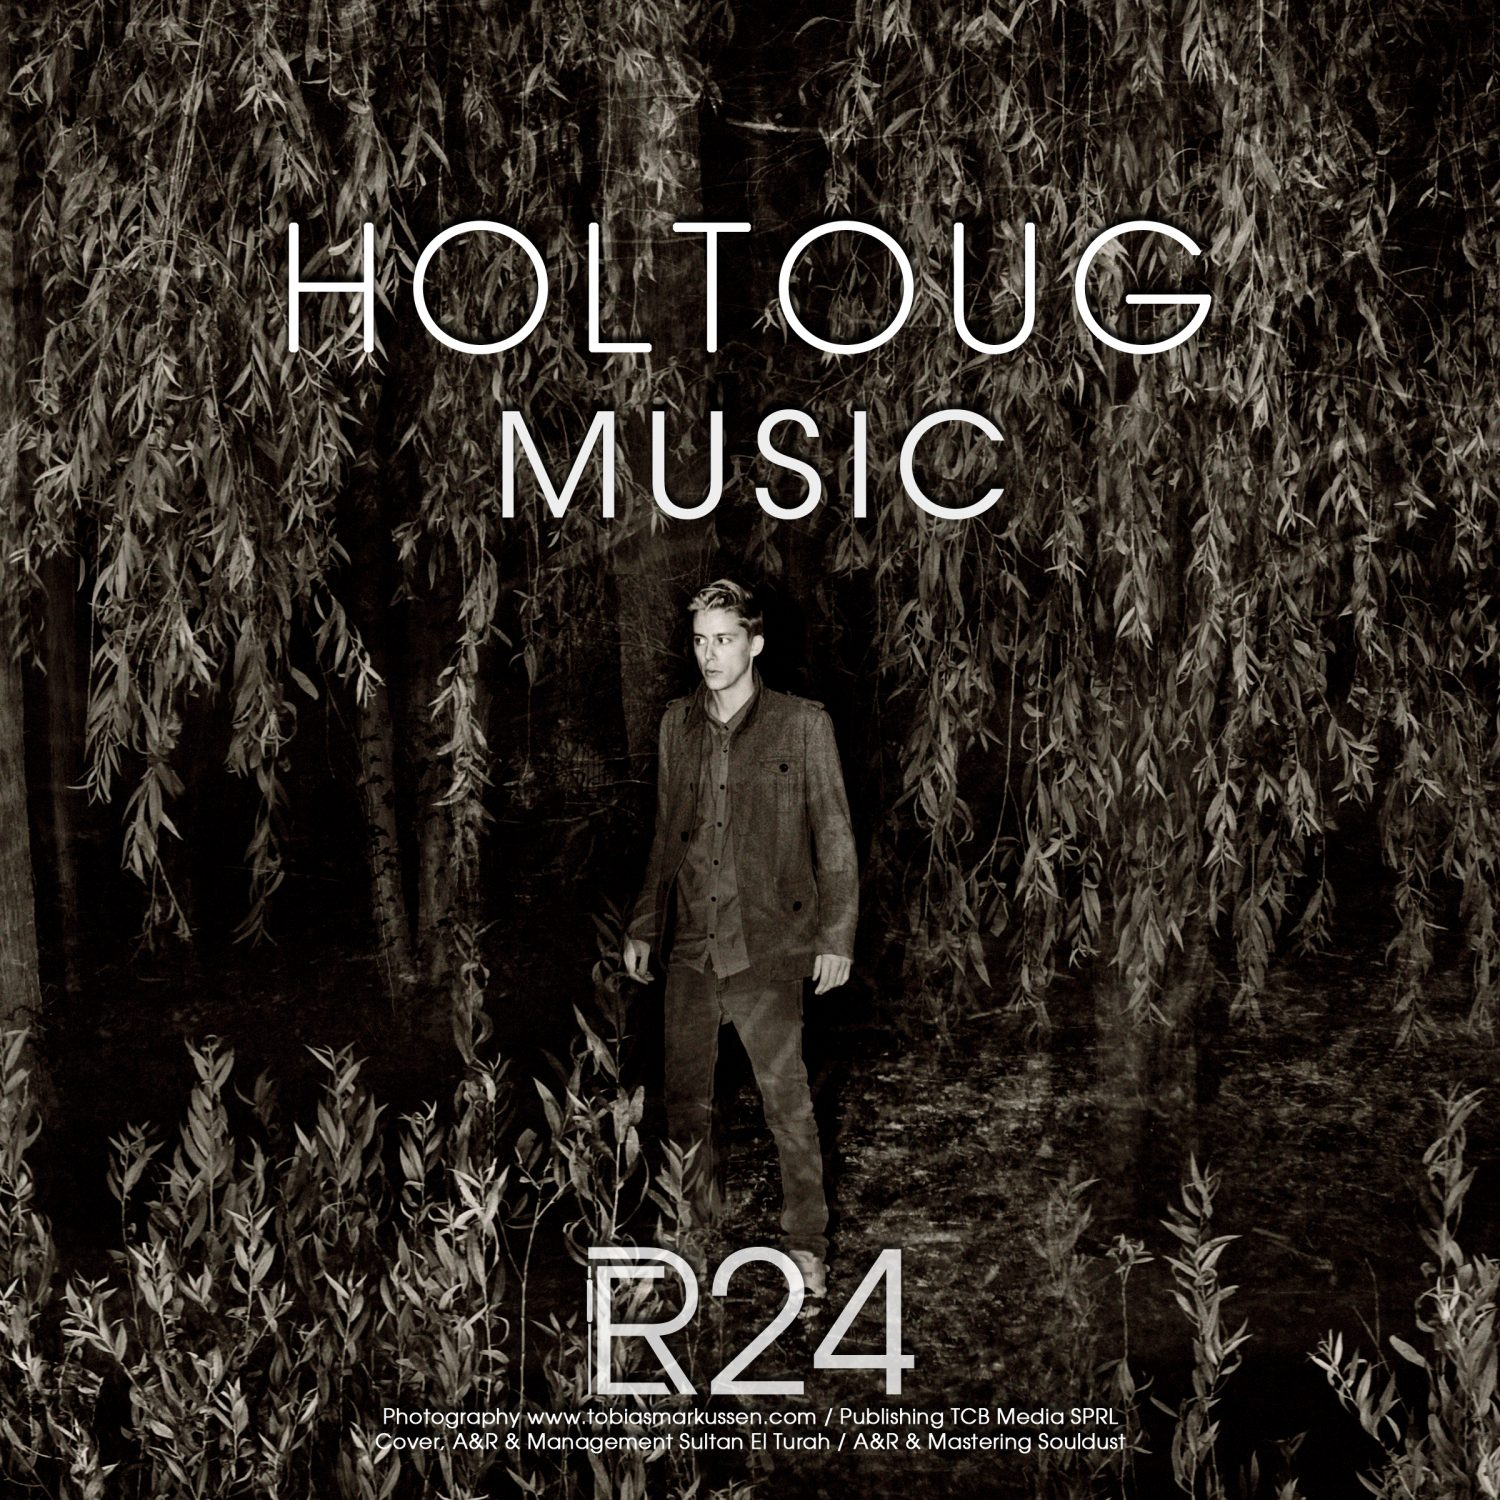 ER024 - Holtoug - Music EP - Electronical Reeds